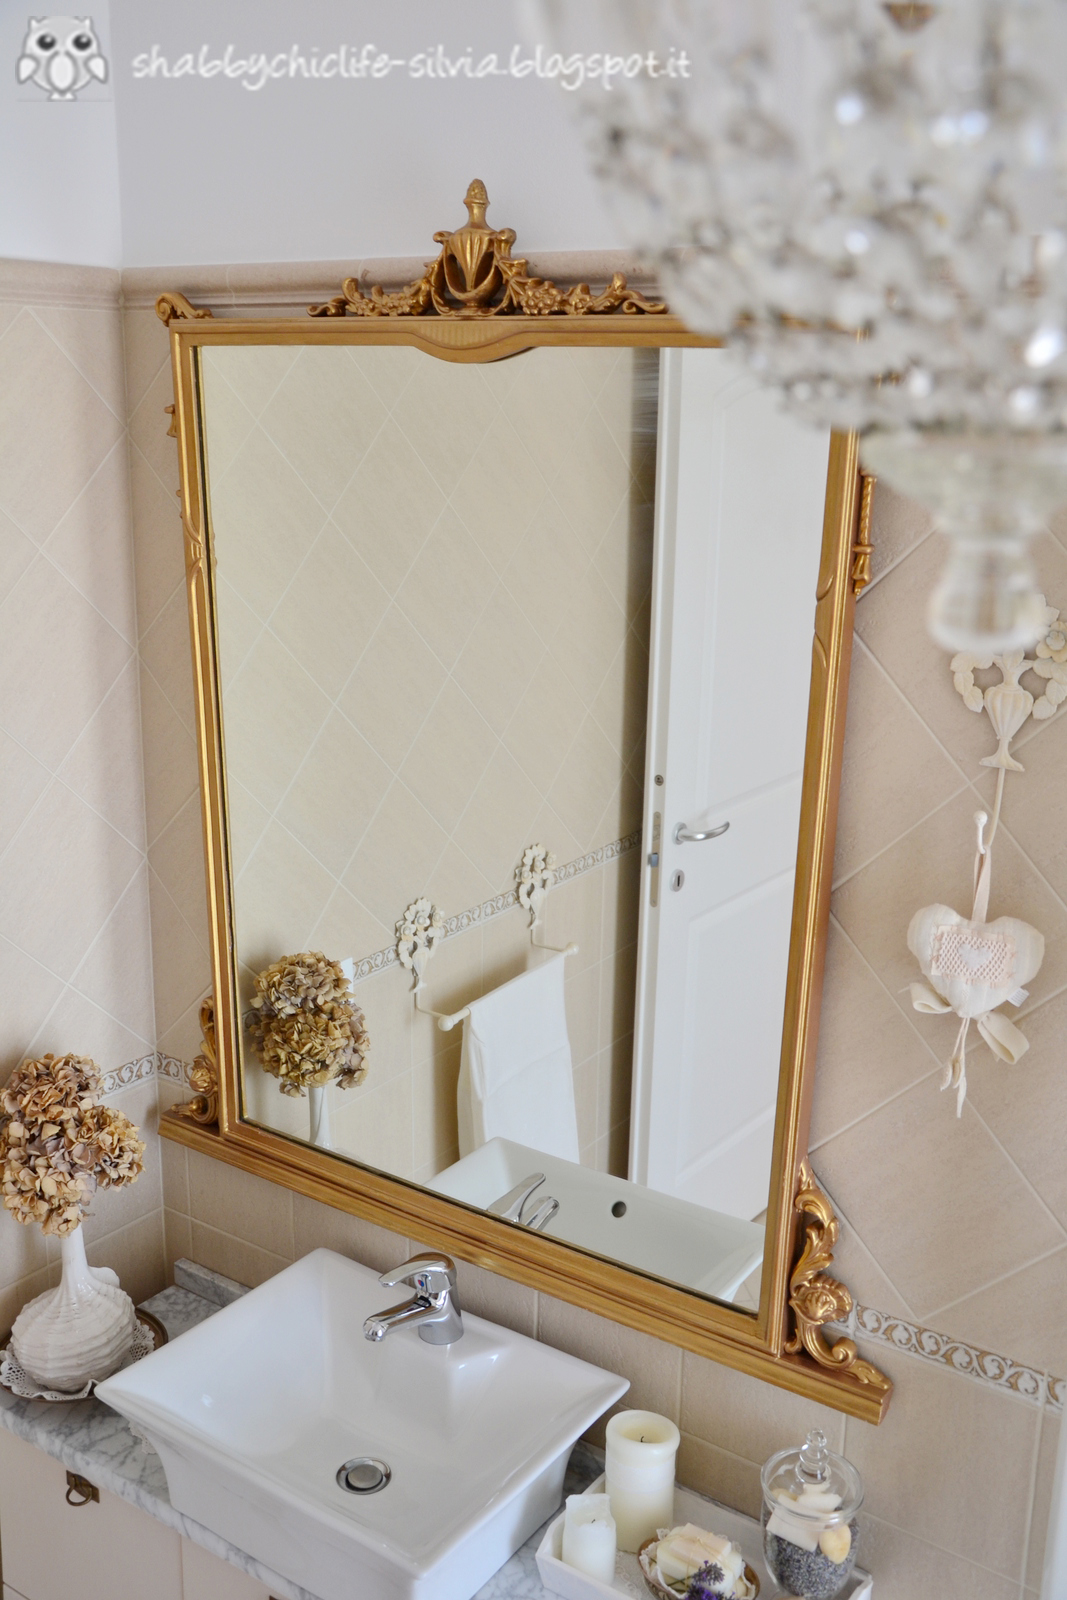 Shabbychiclife bagno restyle shabby chic ii parte - Bagno shabby chic ...